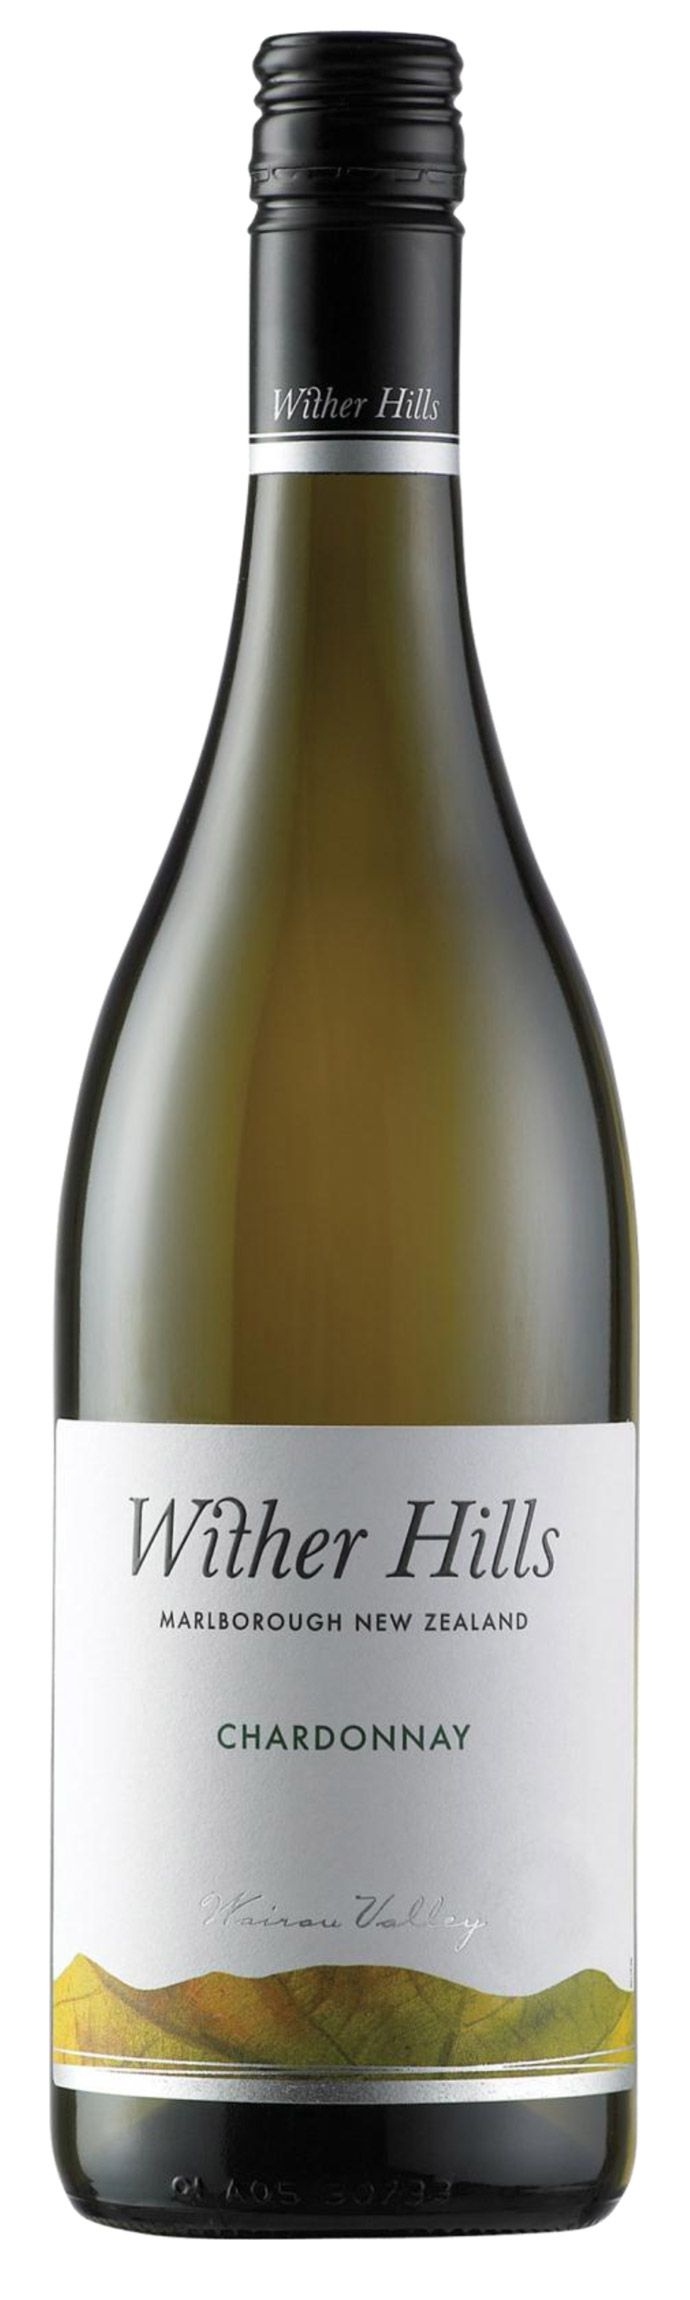 a bottle of wither hills chardonnay (year unspecified)